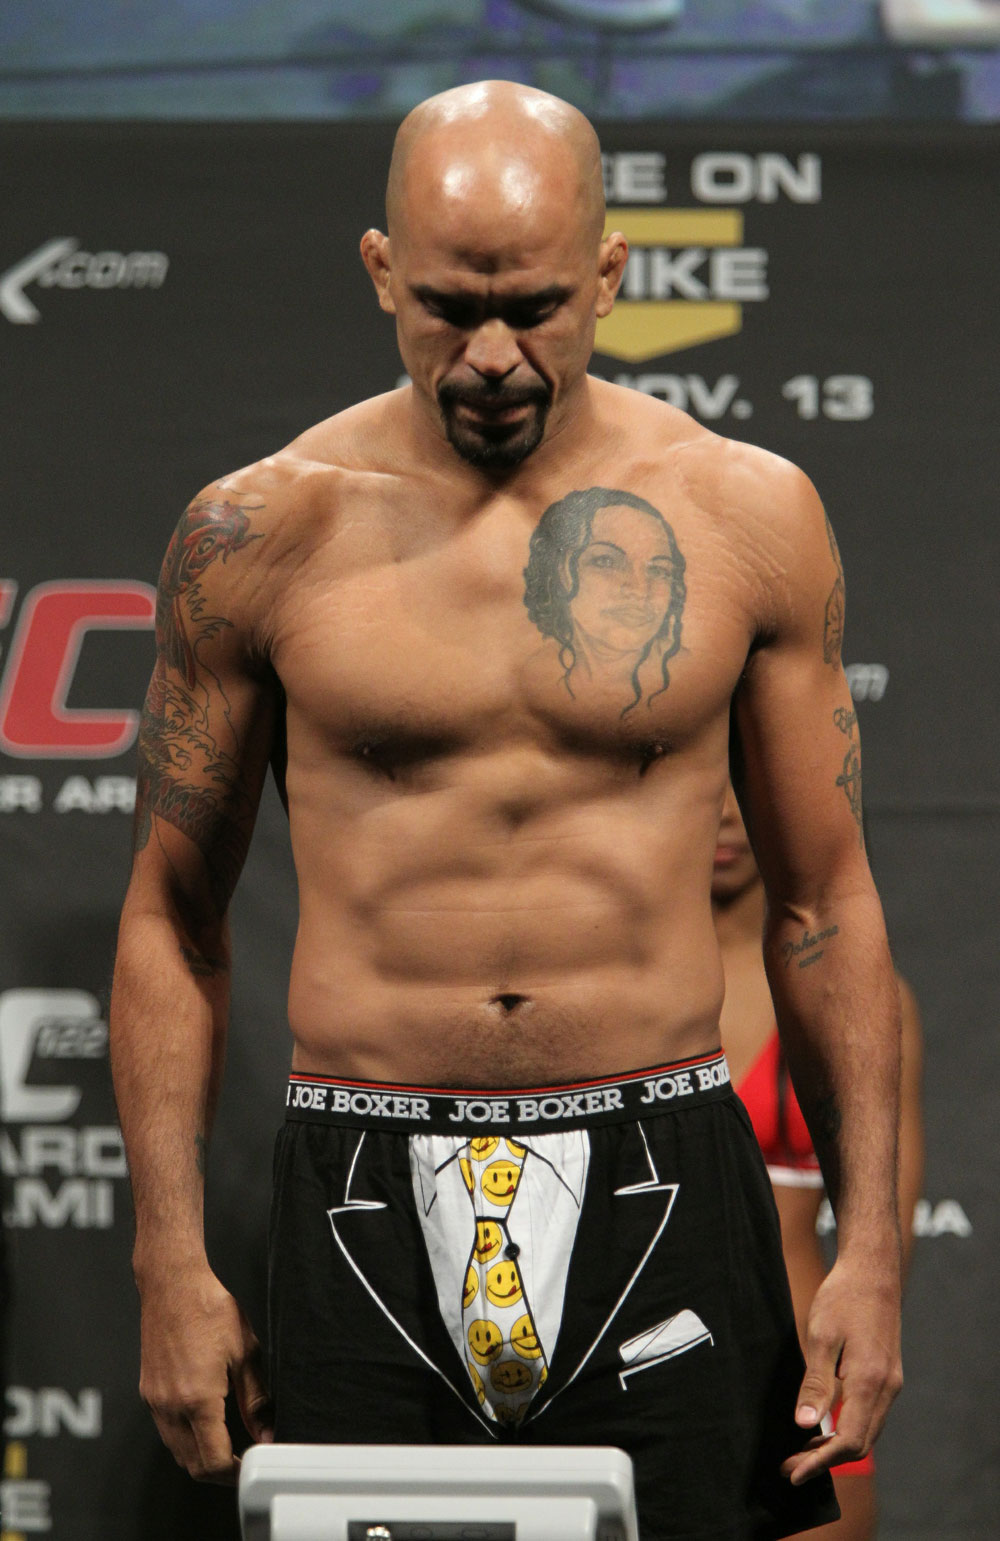 Jorge Rivera of United States weighs in at 185 lbs at the UFC 122 weigh-in at the Koenig Pilsener Arena on November 12,  2010 in Oberhausen, Germany.  (Photo by Josh Hedges/Zuffa LLC/Zuffa LLC via Getty Images)